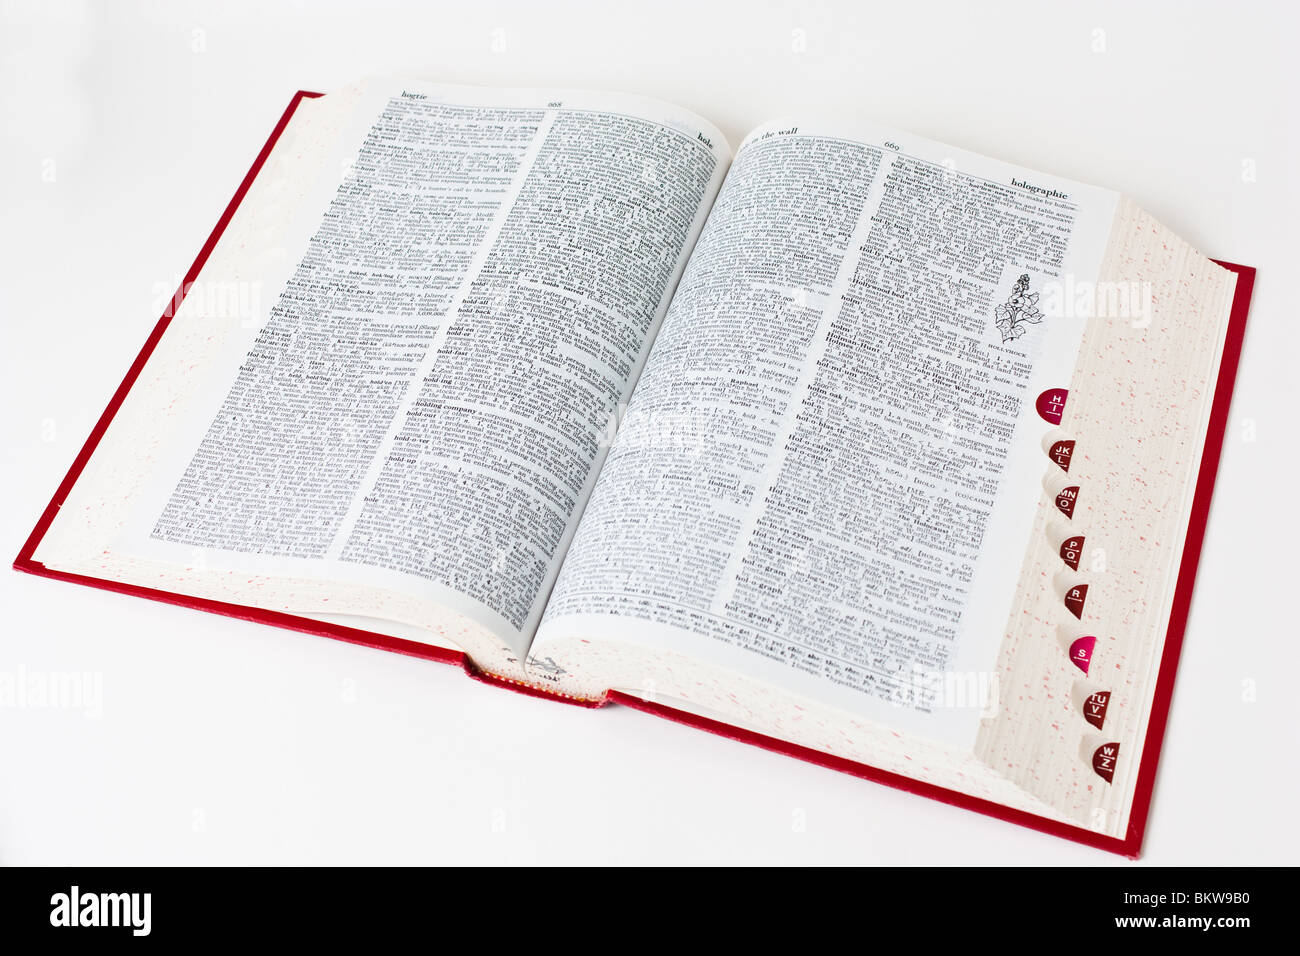 dictionary definition book books reference cutout - Stock Image